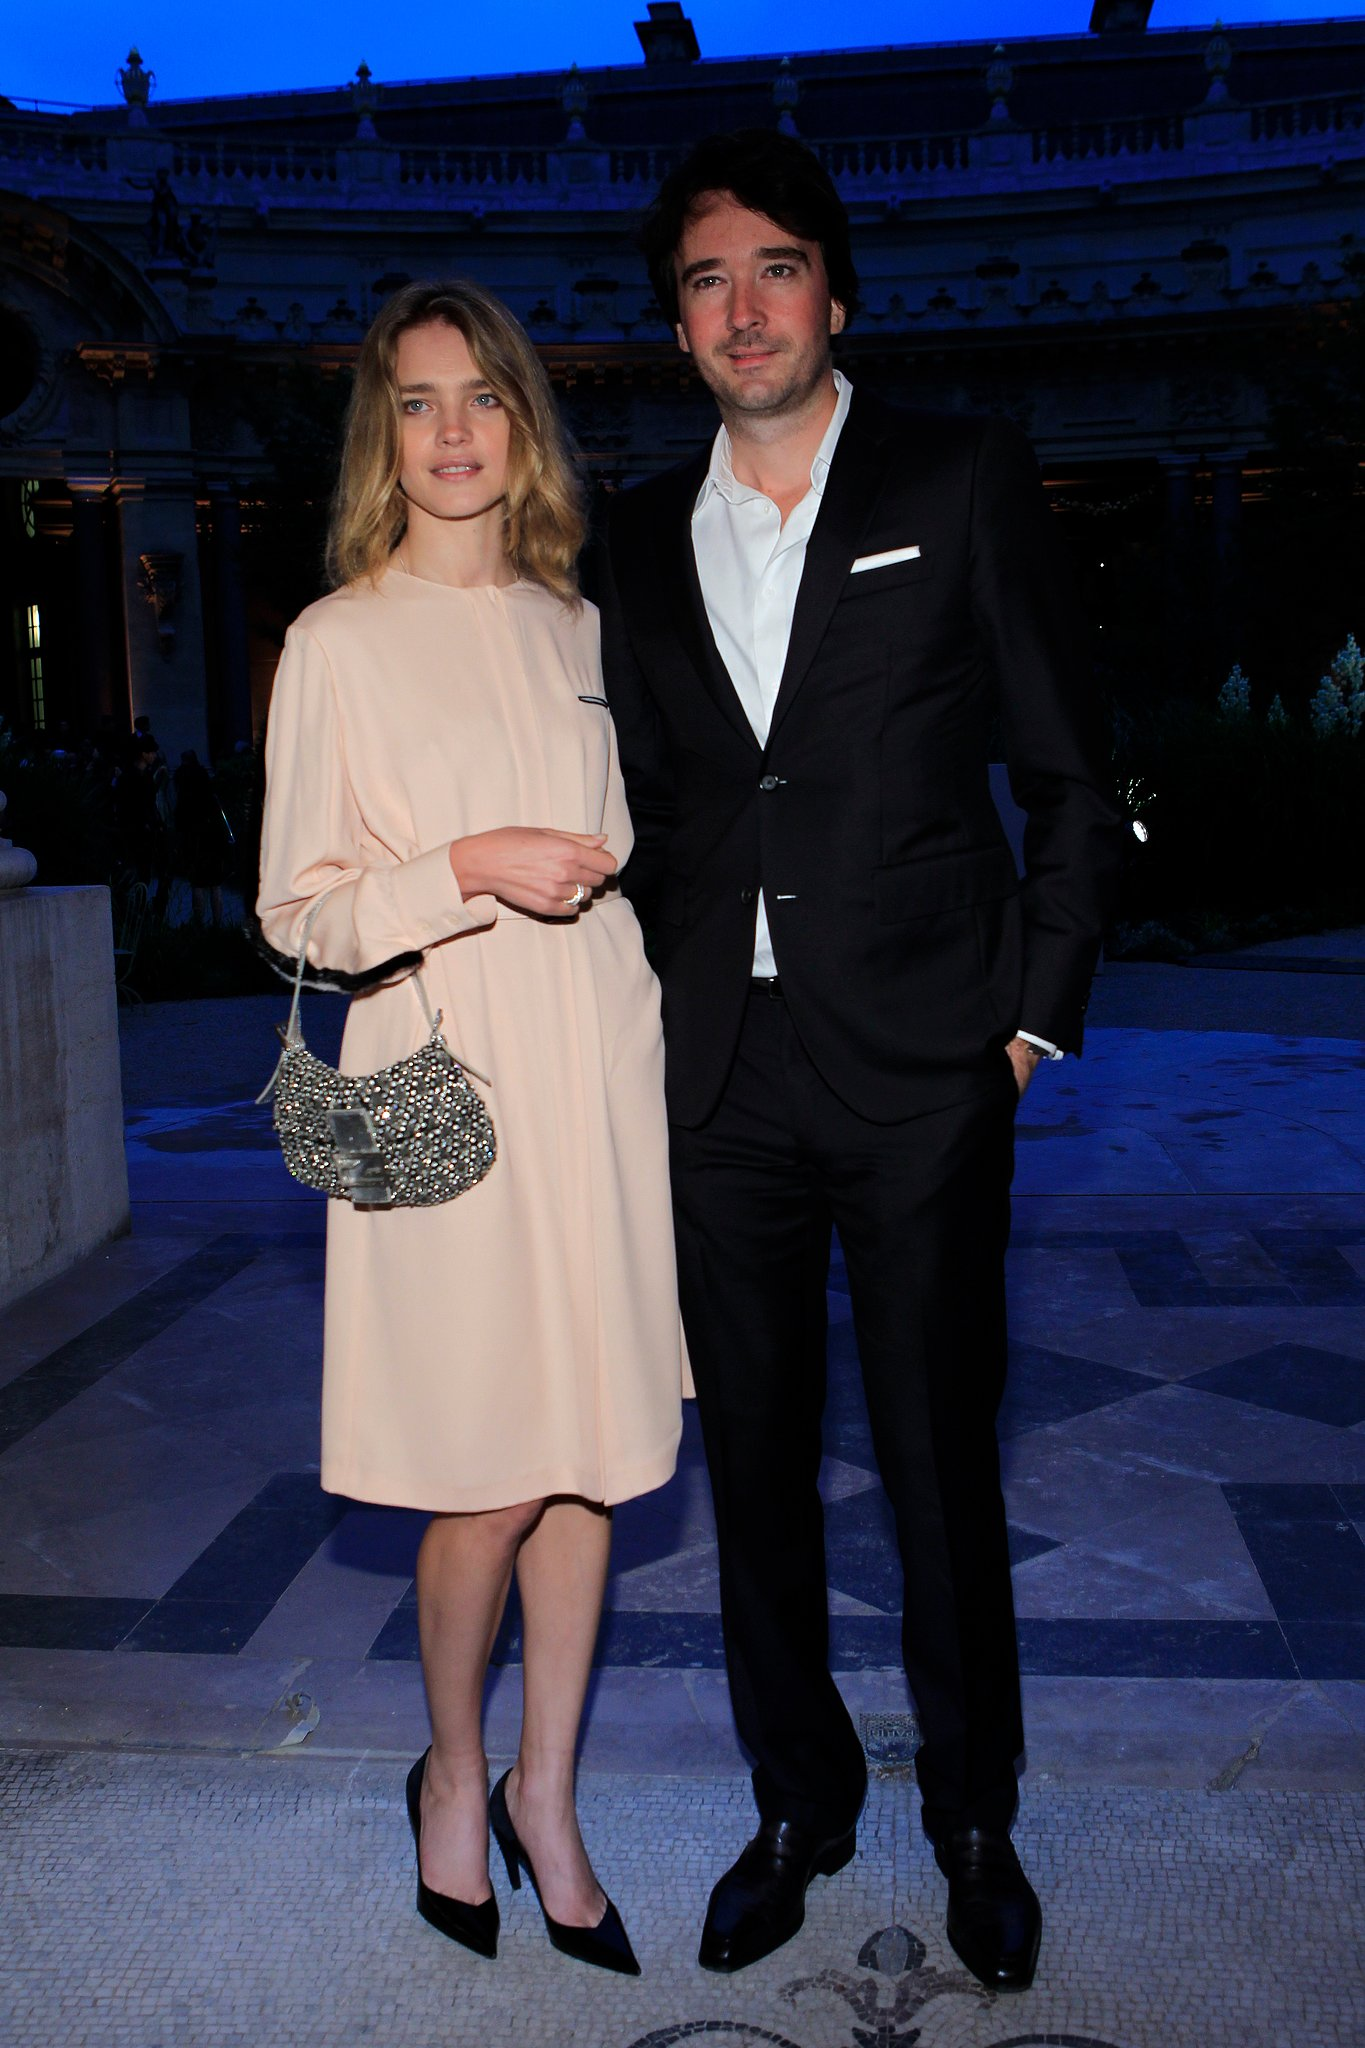 Natalia Vodianova and Antoine Arnault dined with Karl Lagerfeld at the Petit Palais. Source: